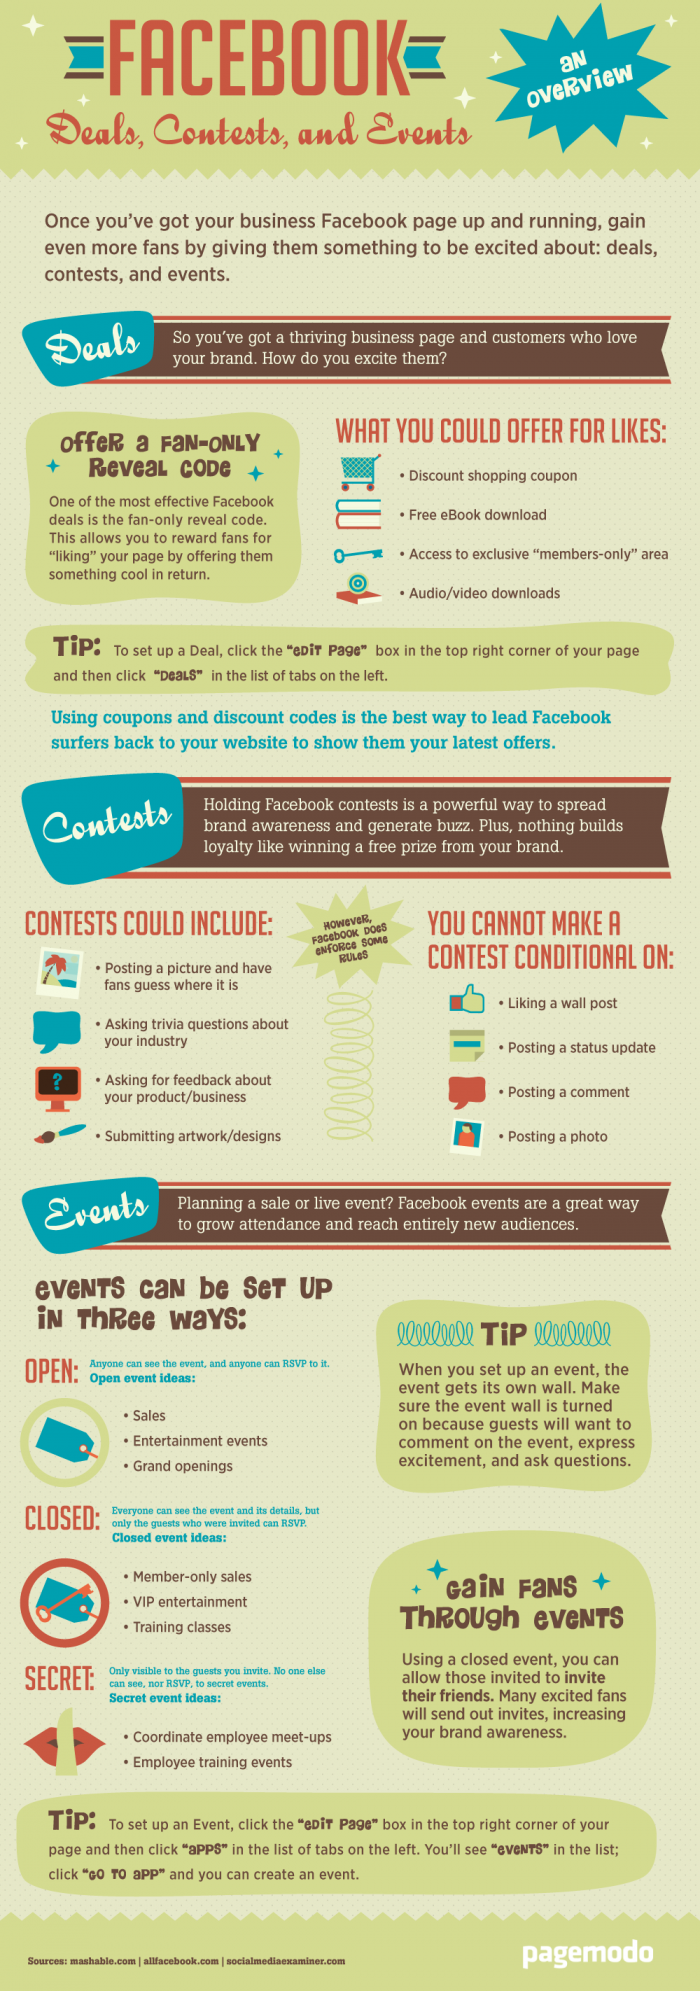 Facebook Deals, Contests & Events Tips #Infographics | Add ...